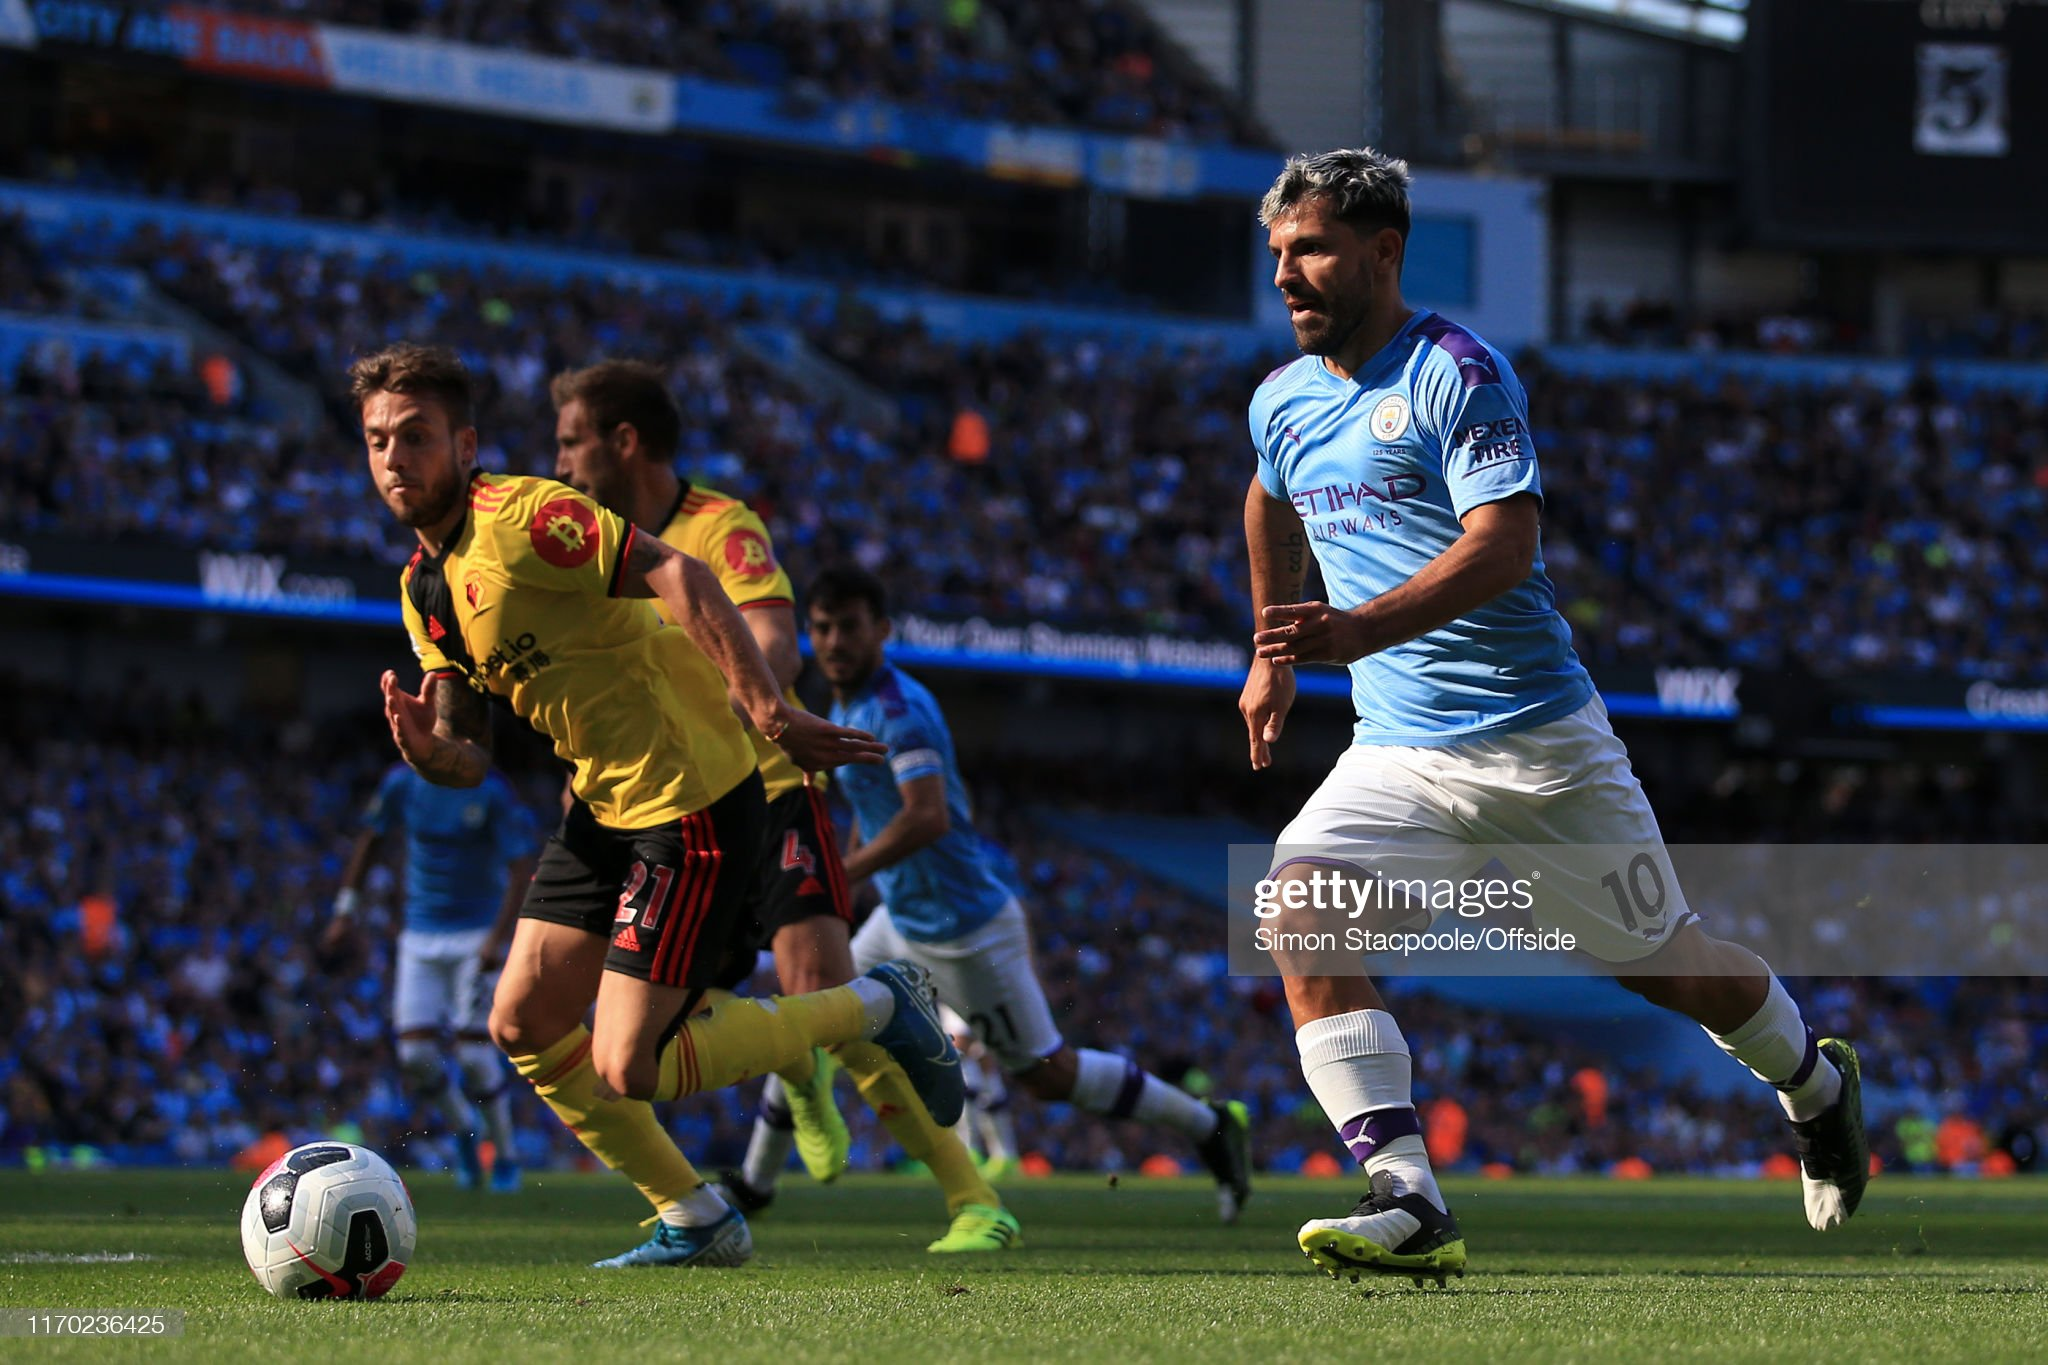 Watford vs Manchester City Preview, prediction and odds